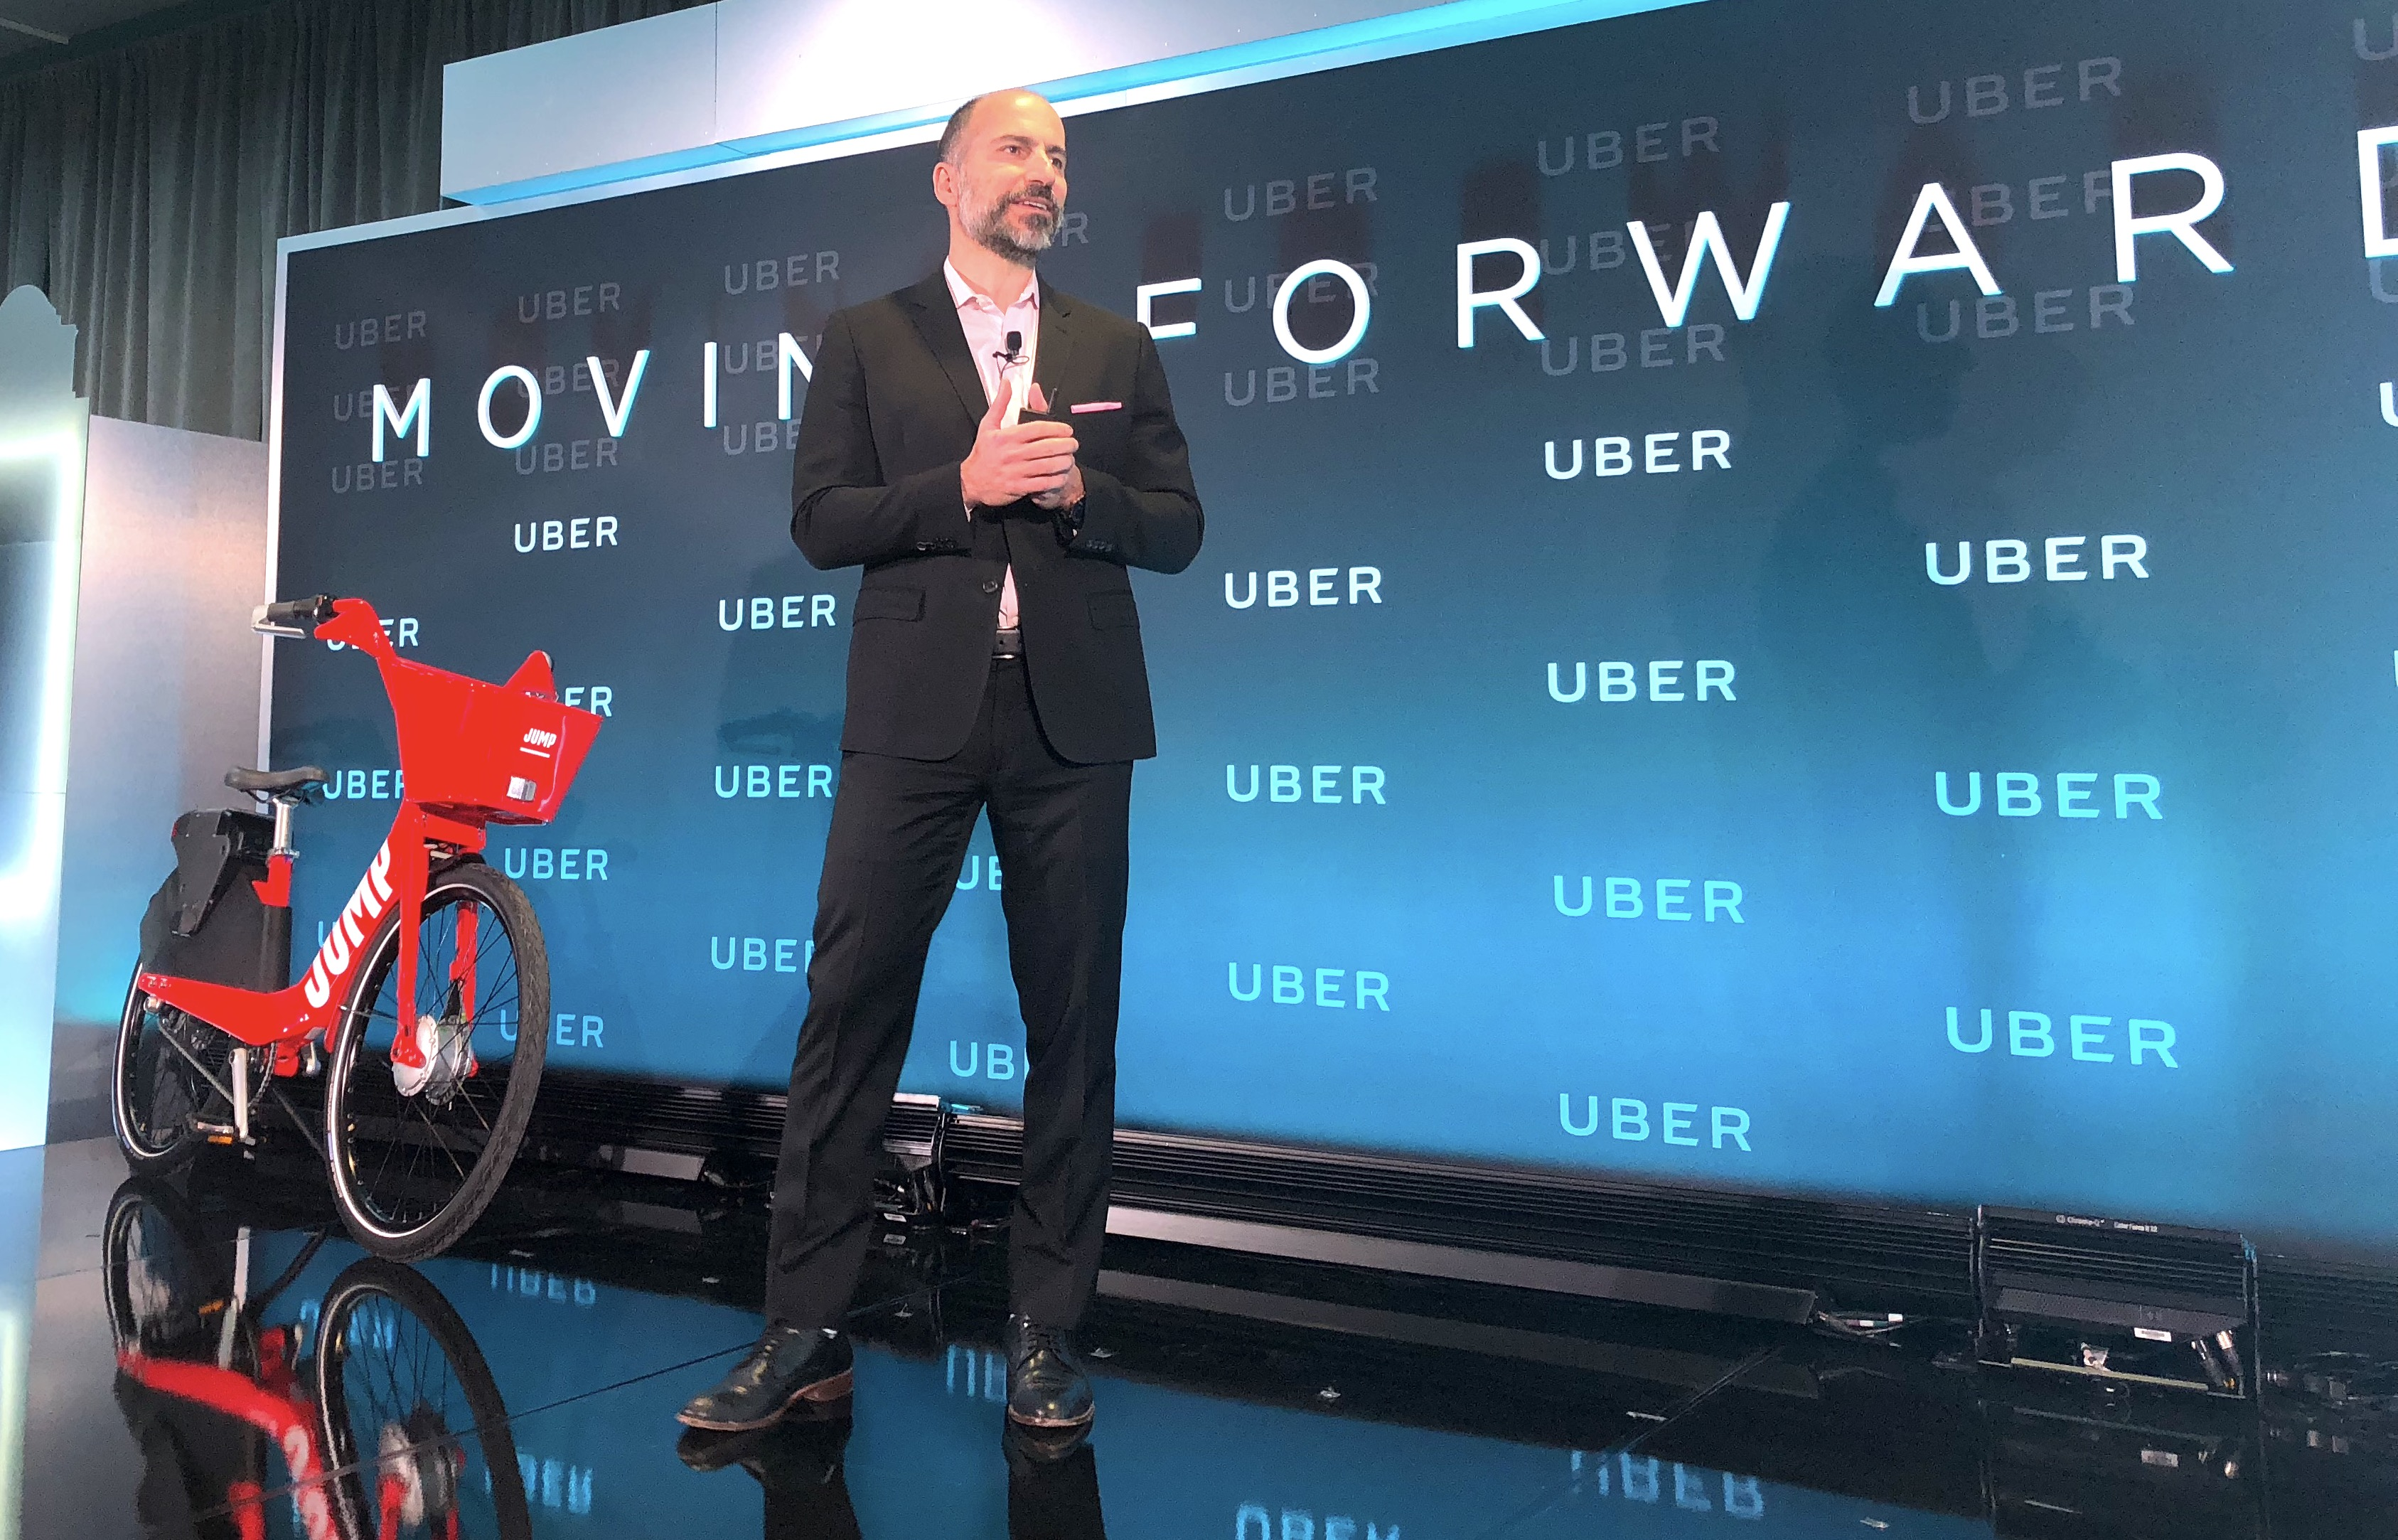 Uber CEO outlines mobility plans